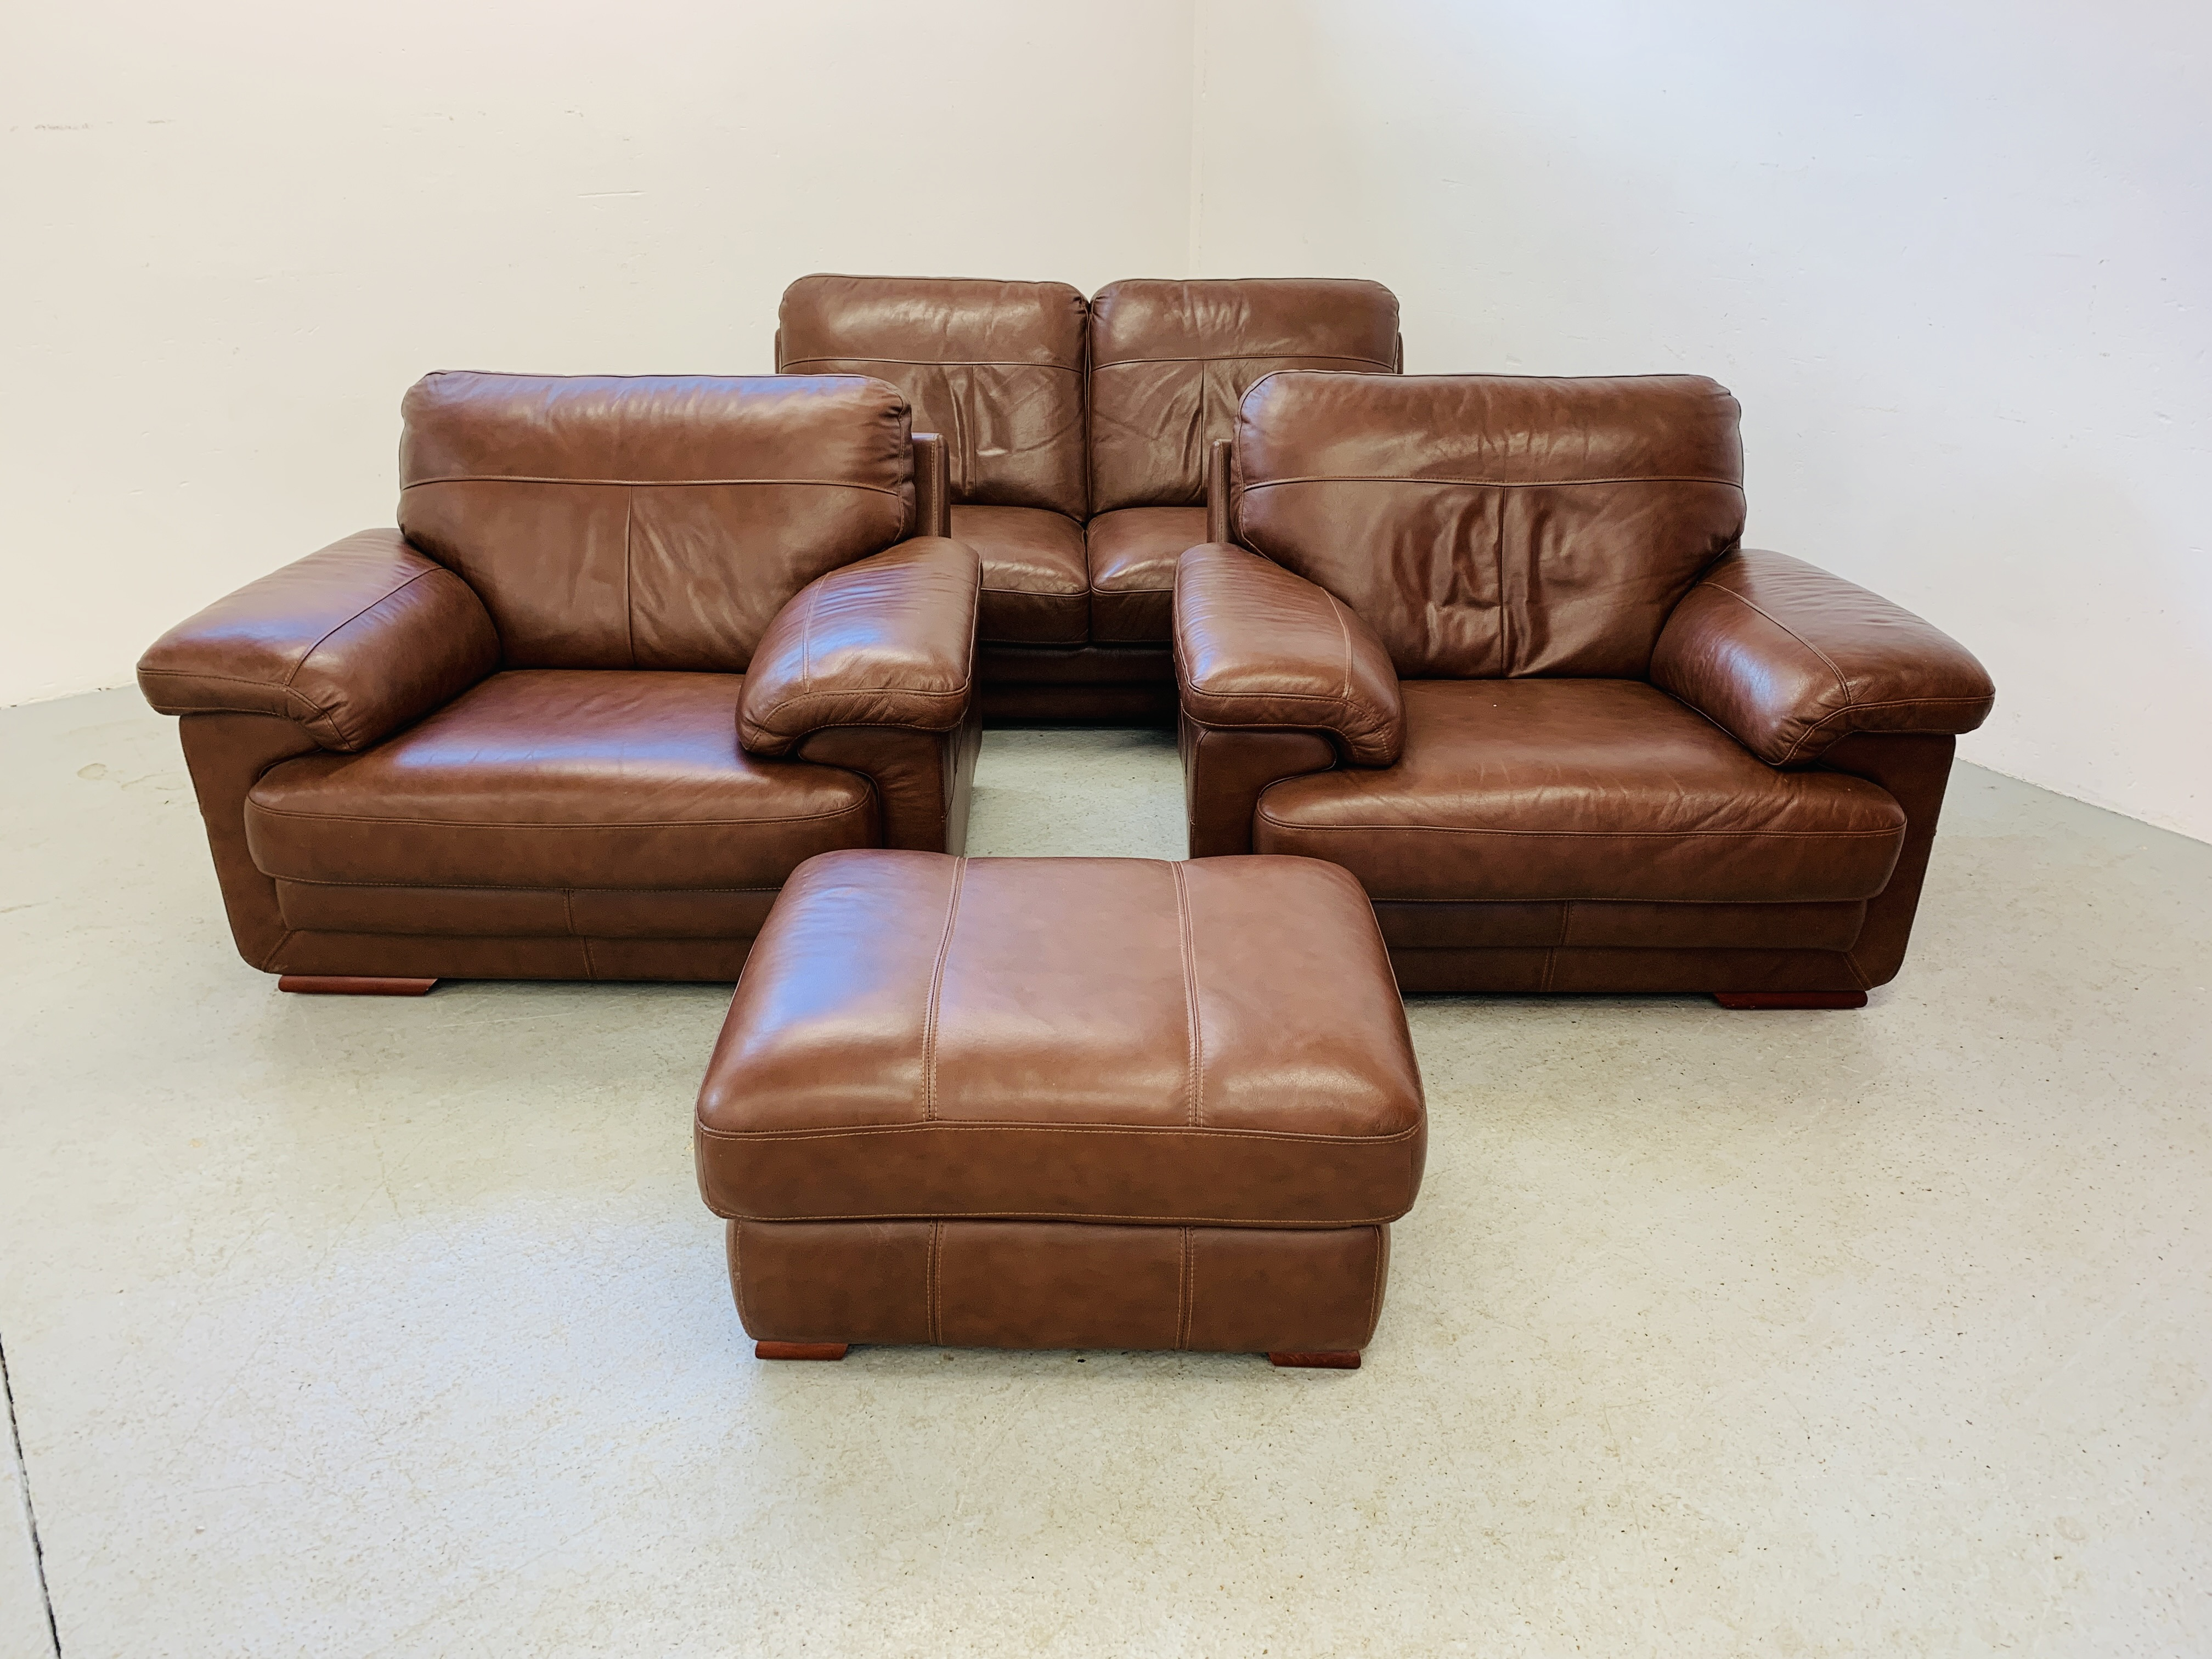 A GOOD QUALITY TAN LEATHER THREE PIECE LOUNGE SUITE WITH MATCHING POUFFE